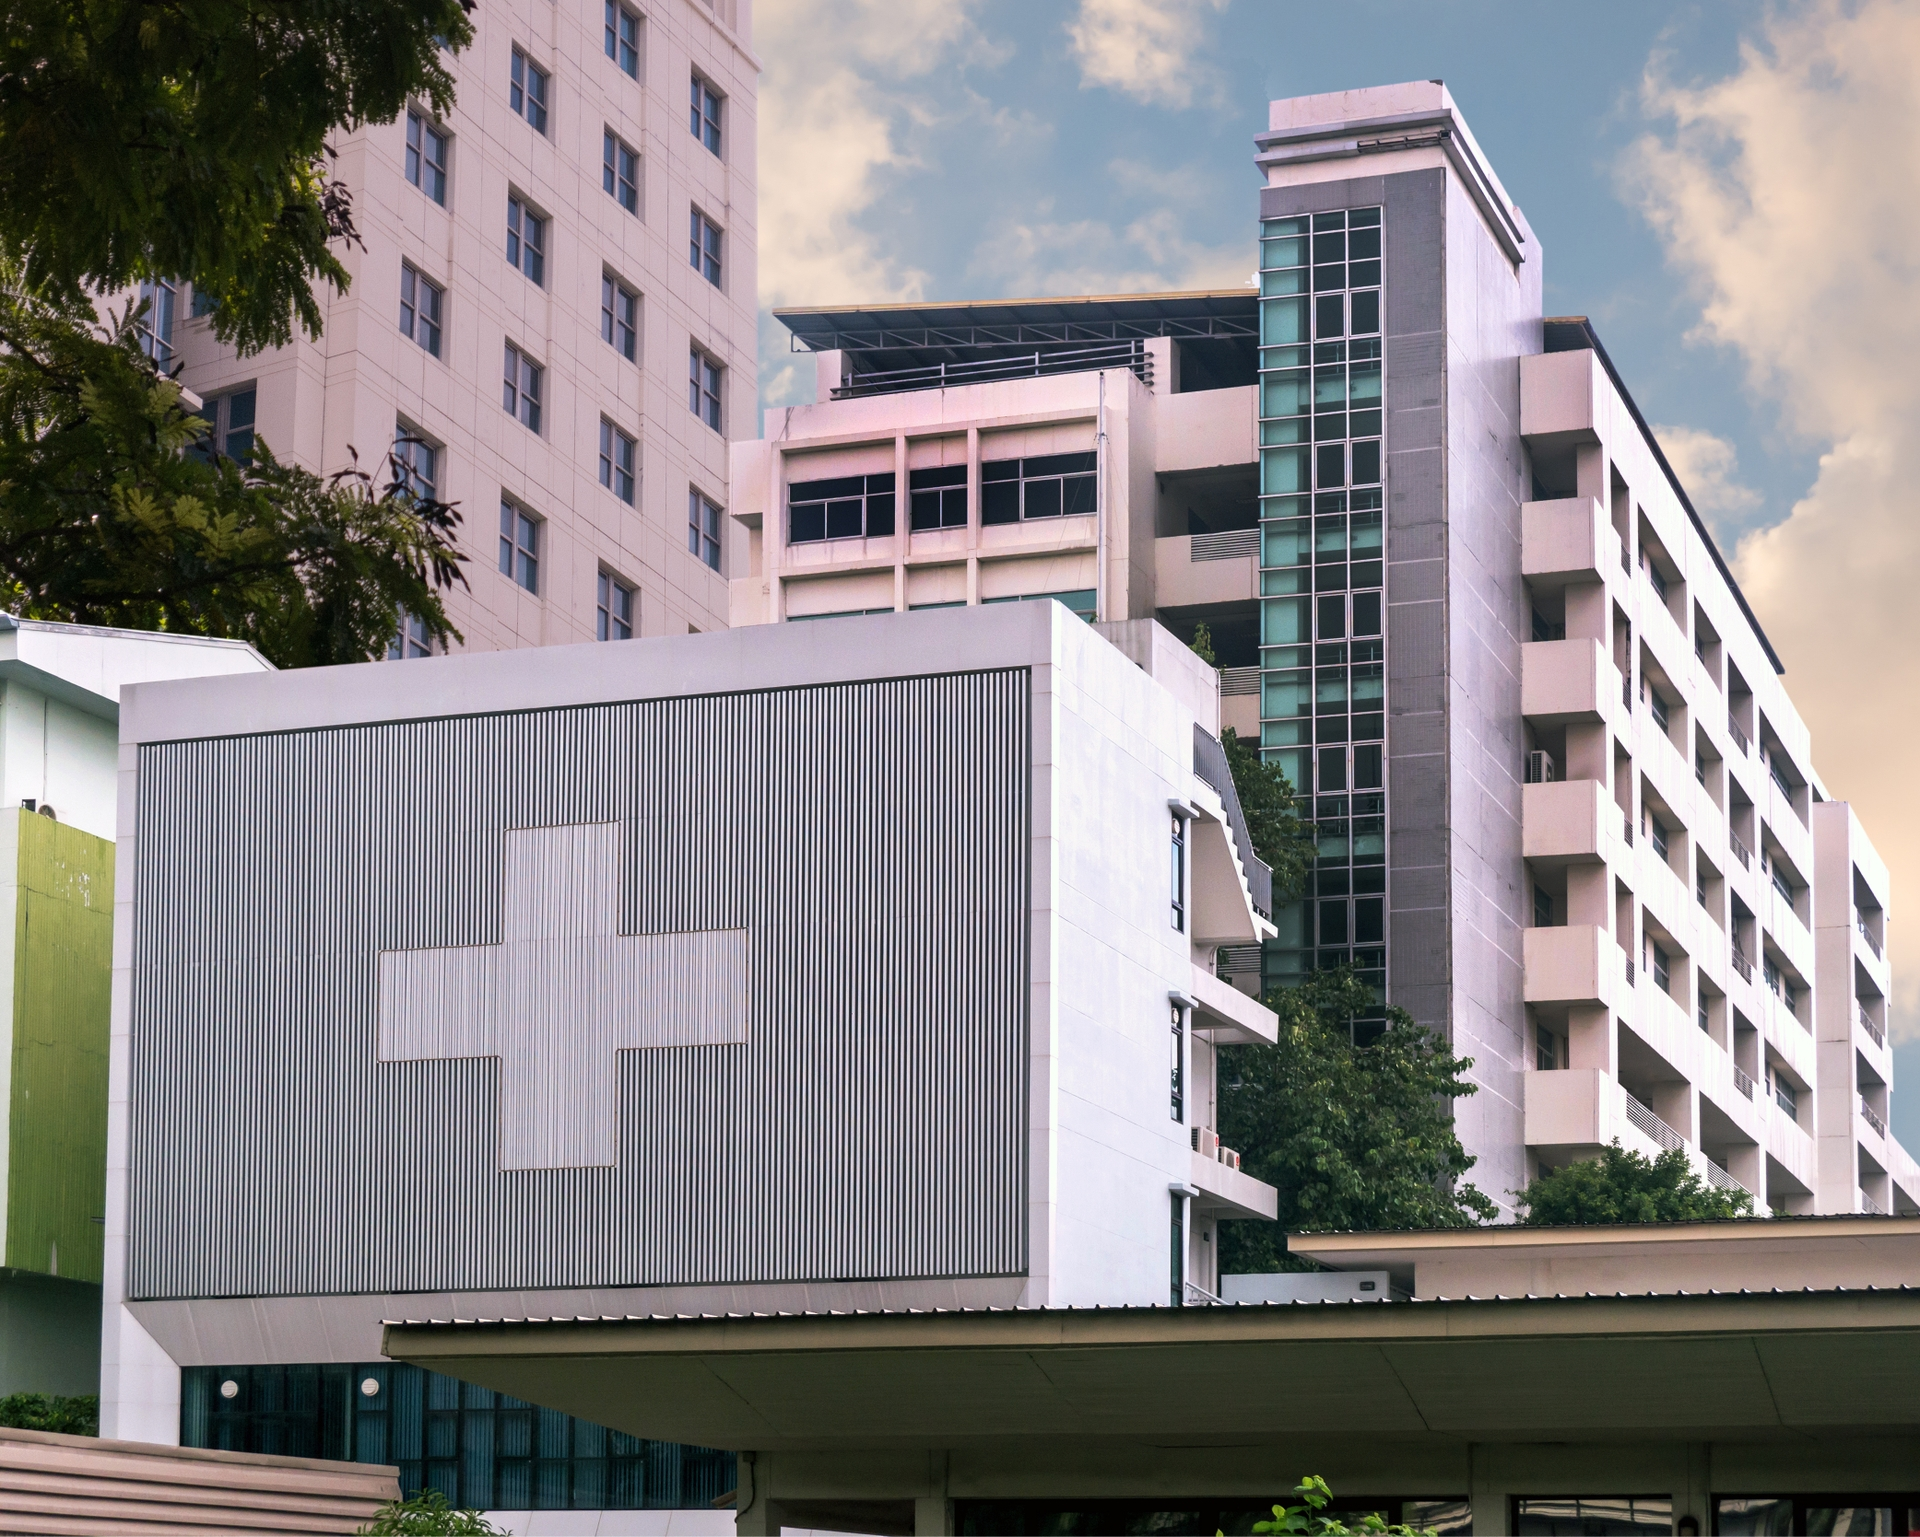 Hospitals are ready to deploy backup power and, in some cases, SCE is also working to shift some of the facilities to less vulnerable circuits to help avoid possible shutoffs.